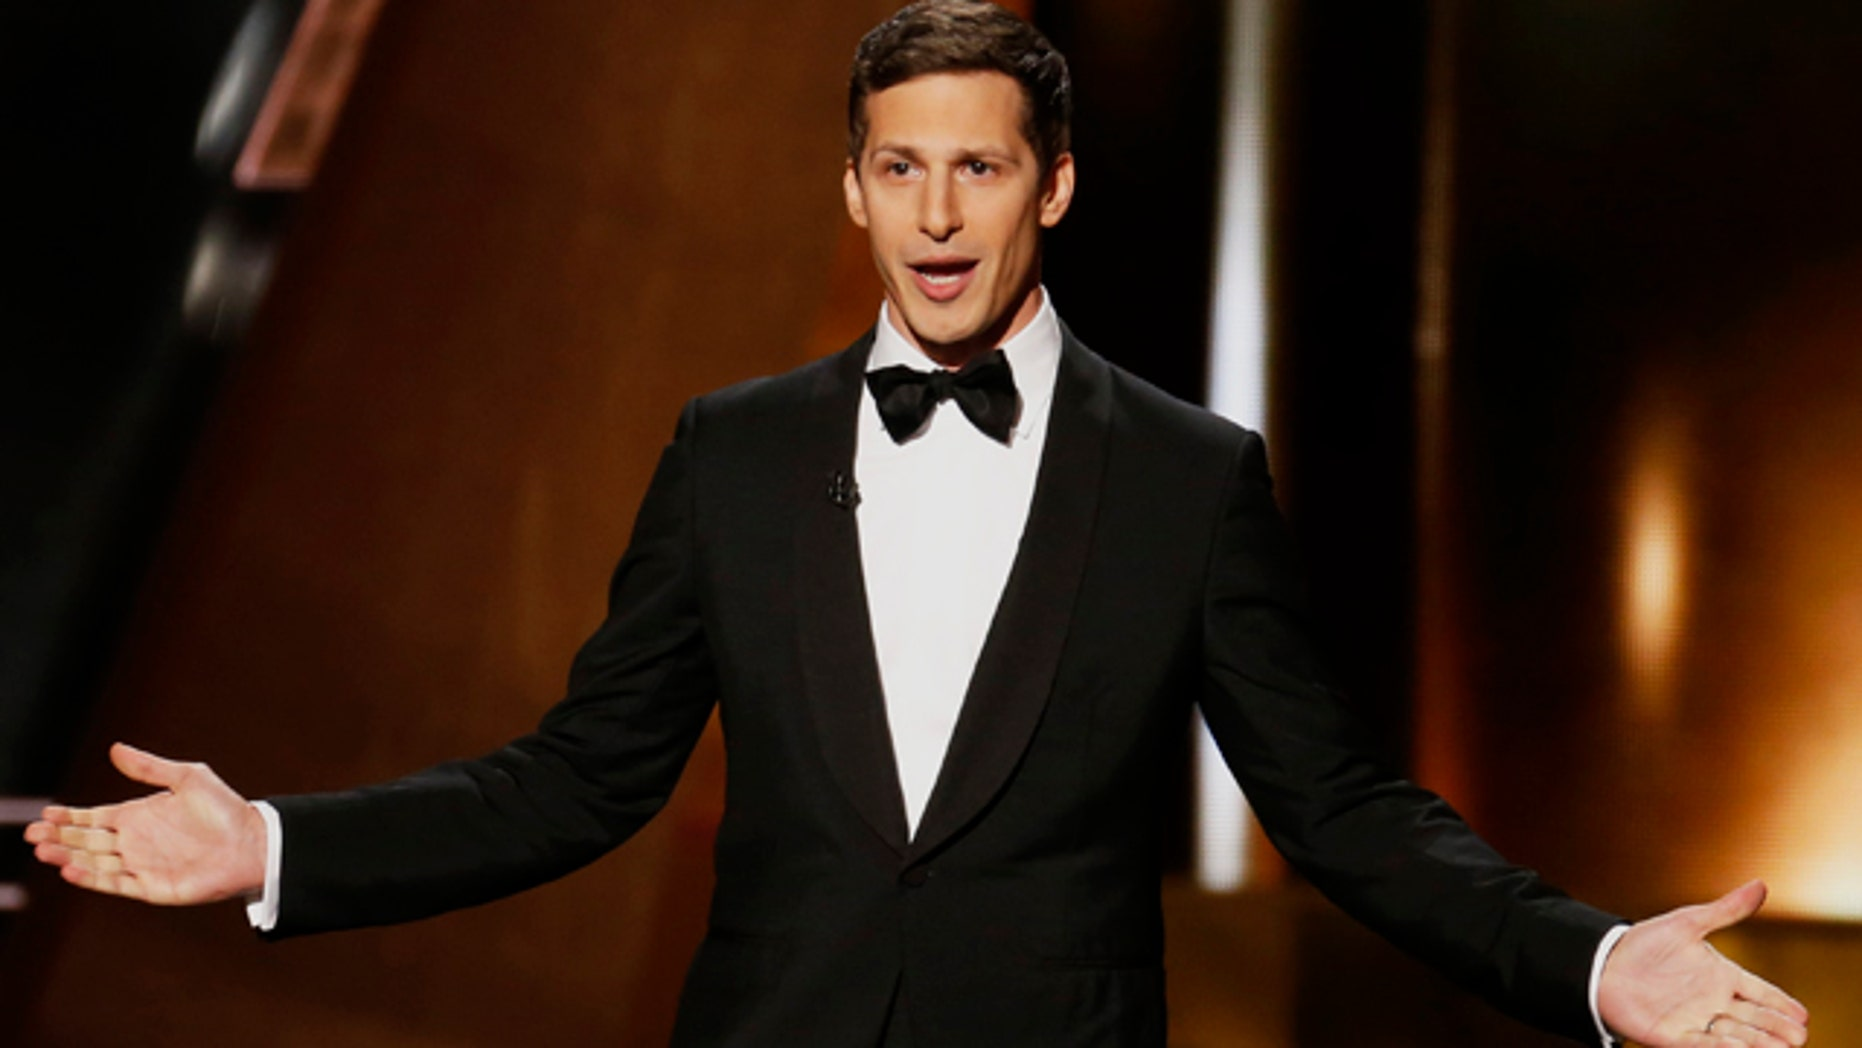 Host Andy Samberg takes the stage at the 67th Primetime Emmy Awards in Los Angeles, California September 20, 2015.  REUTERS/Lucy Nicholson - RTS22I6